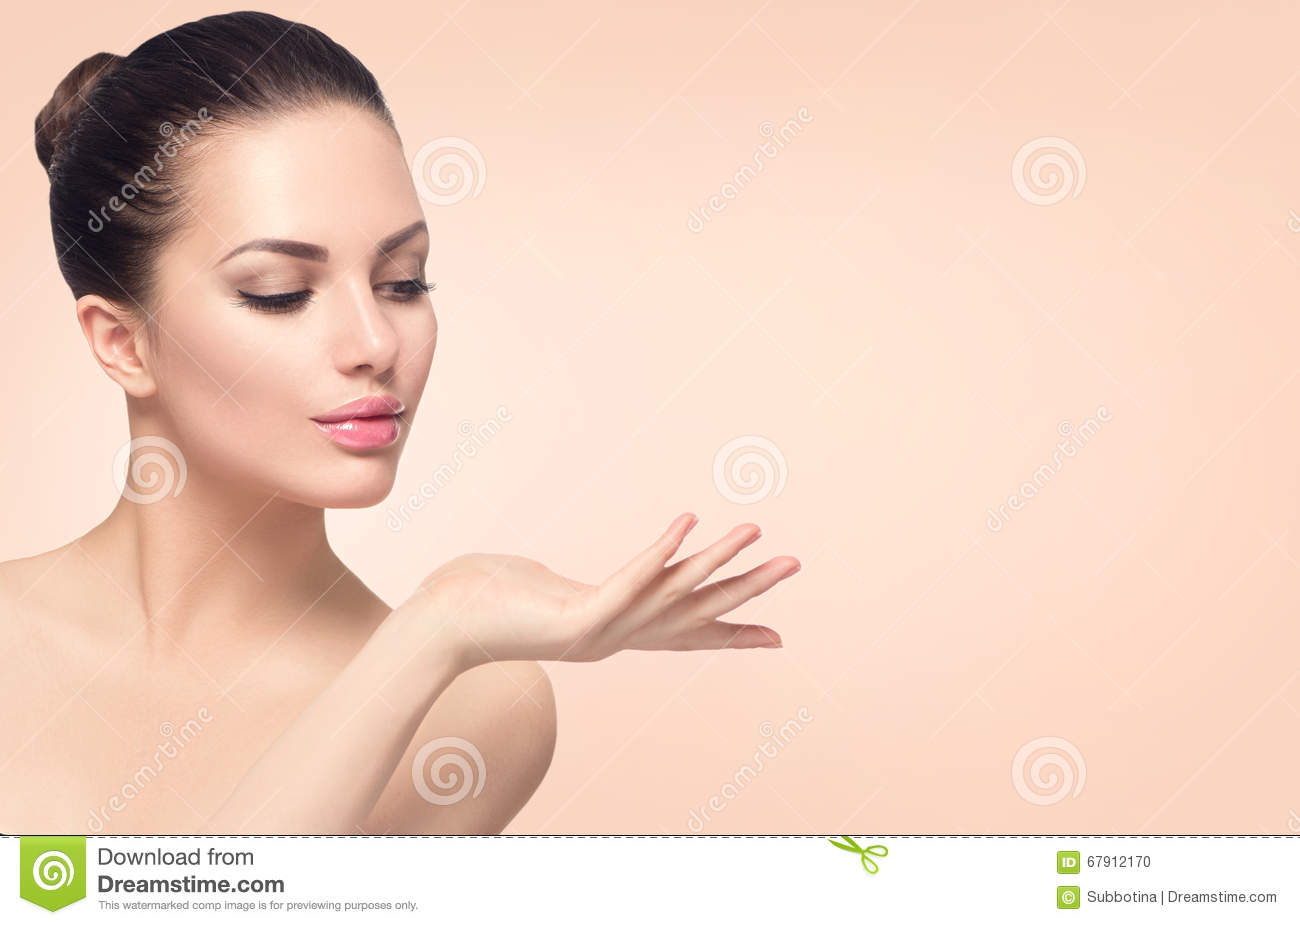 Spa woman with perfect skin